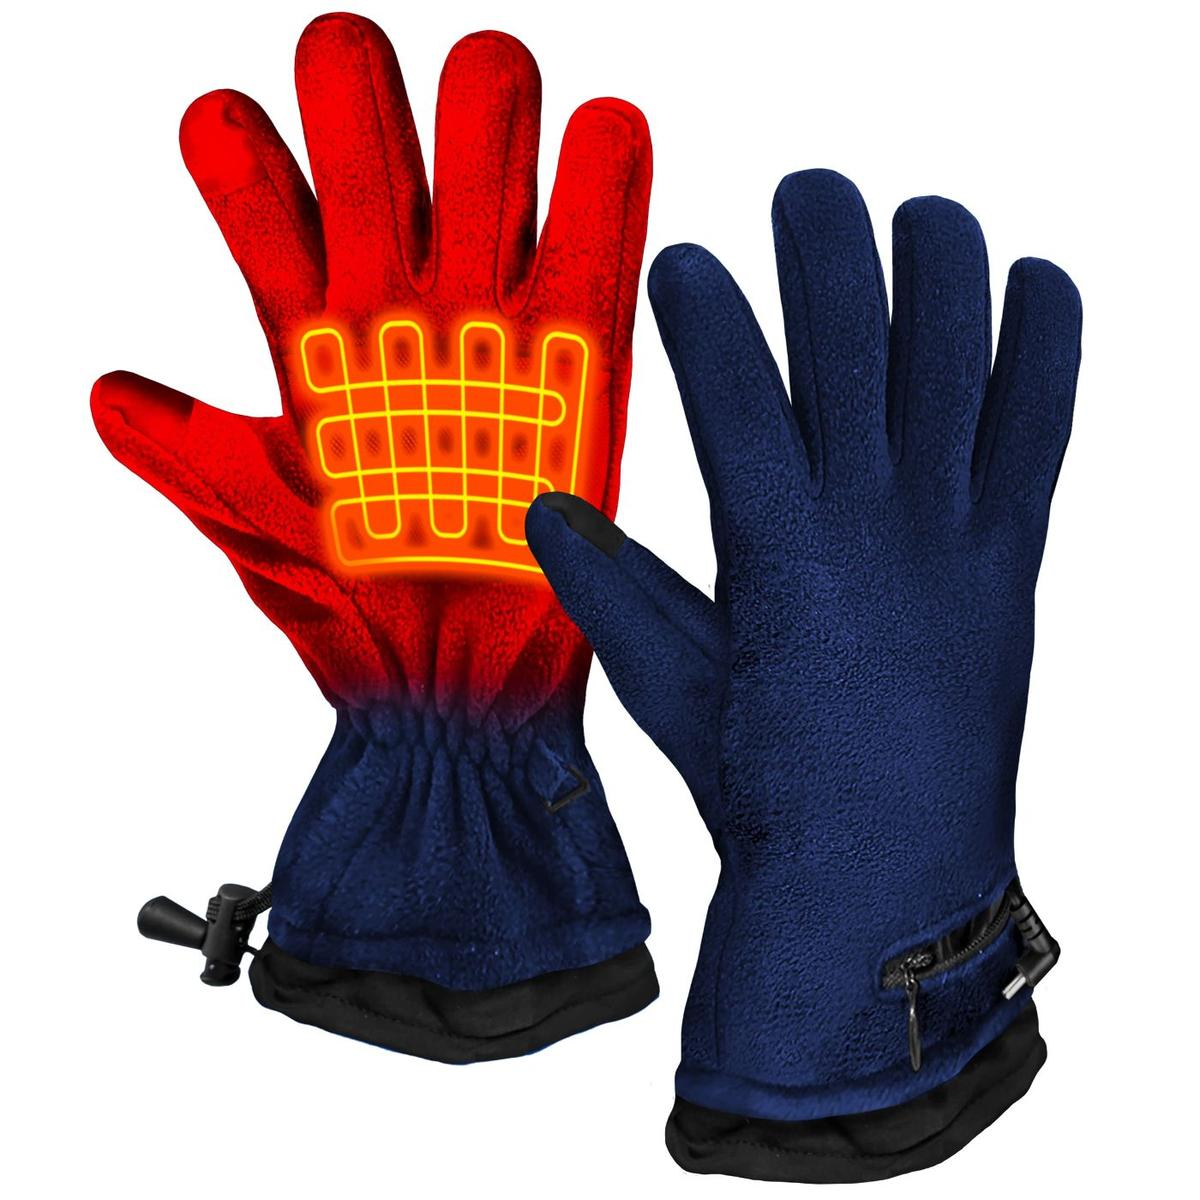 ActionHeat AA Battery Heated Fleece Gloves - Back